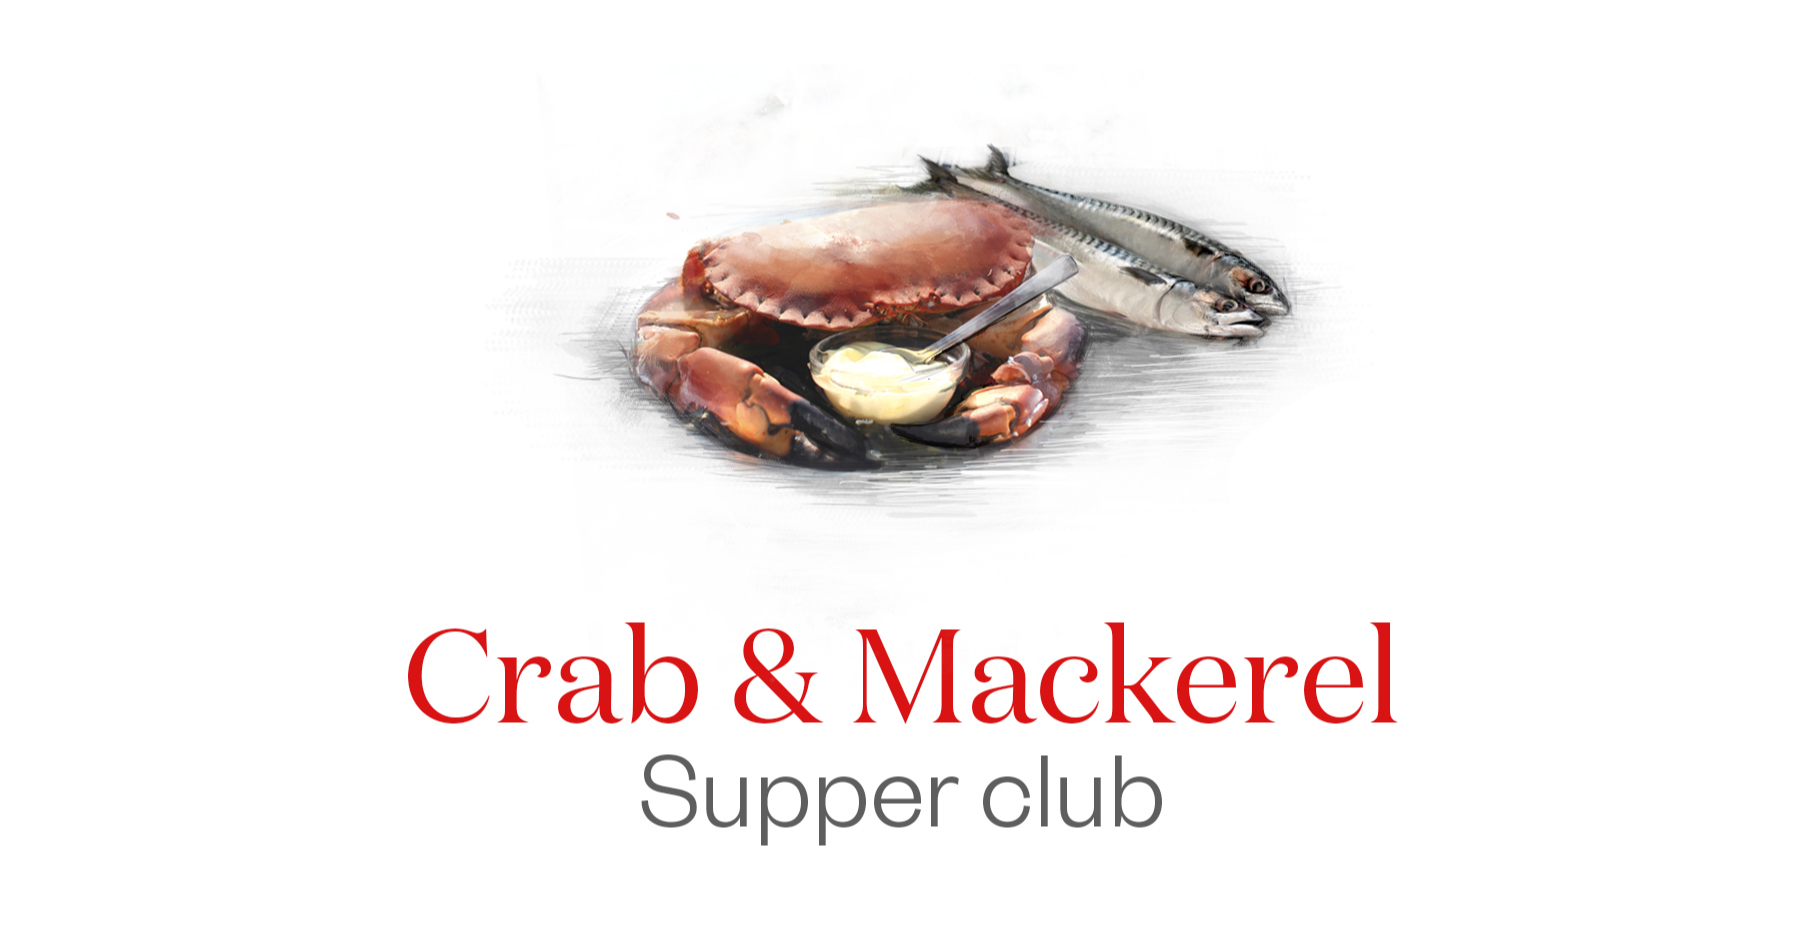 Crab and Mackerel Supper Club